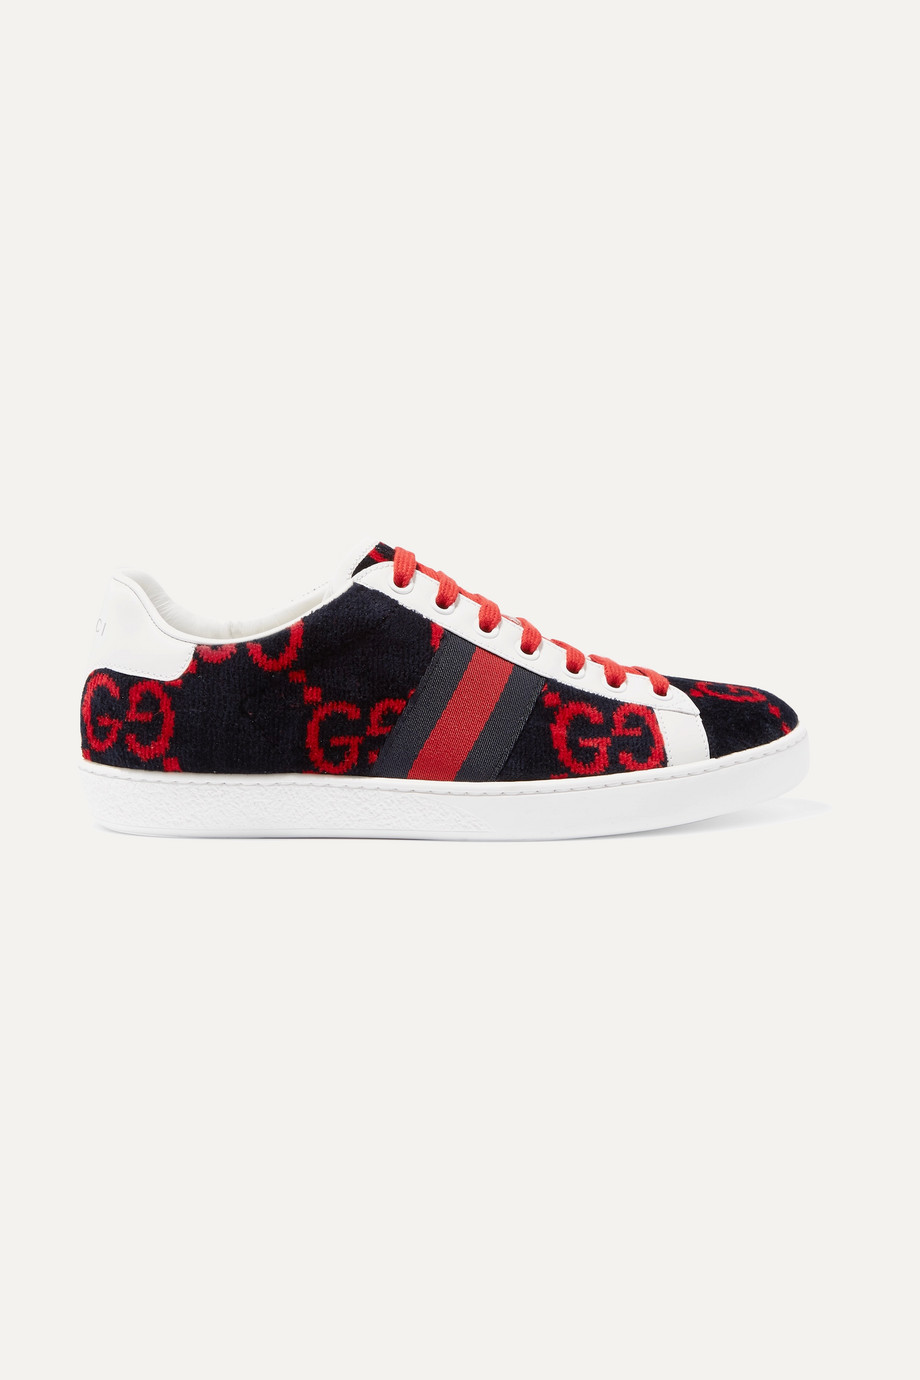 GUCCI New Ace leather-trimmed logo-print velvet sneakers